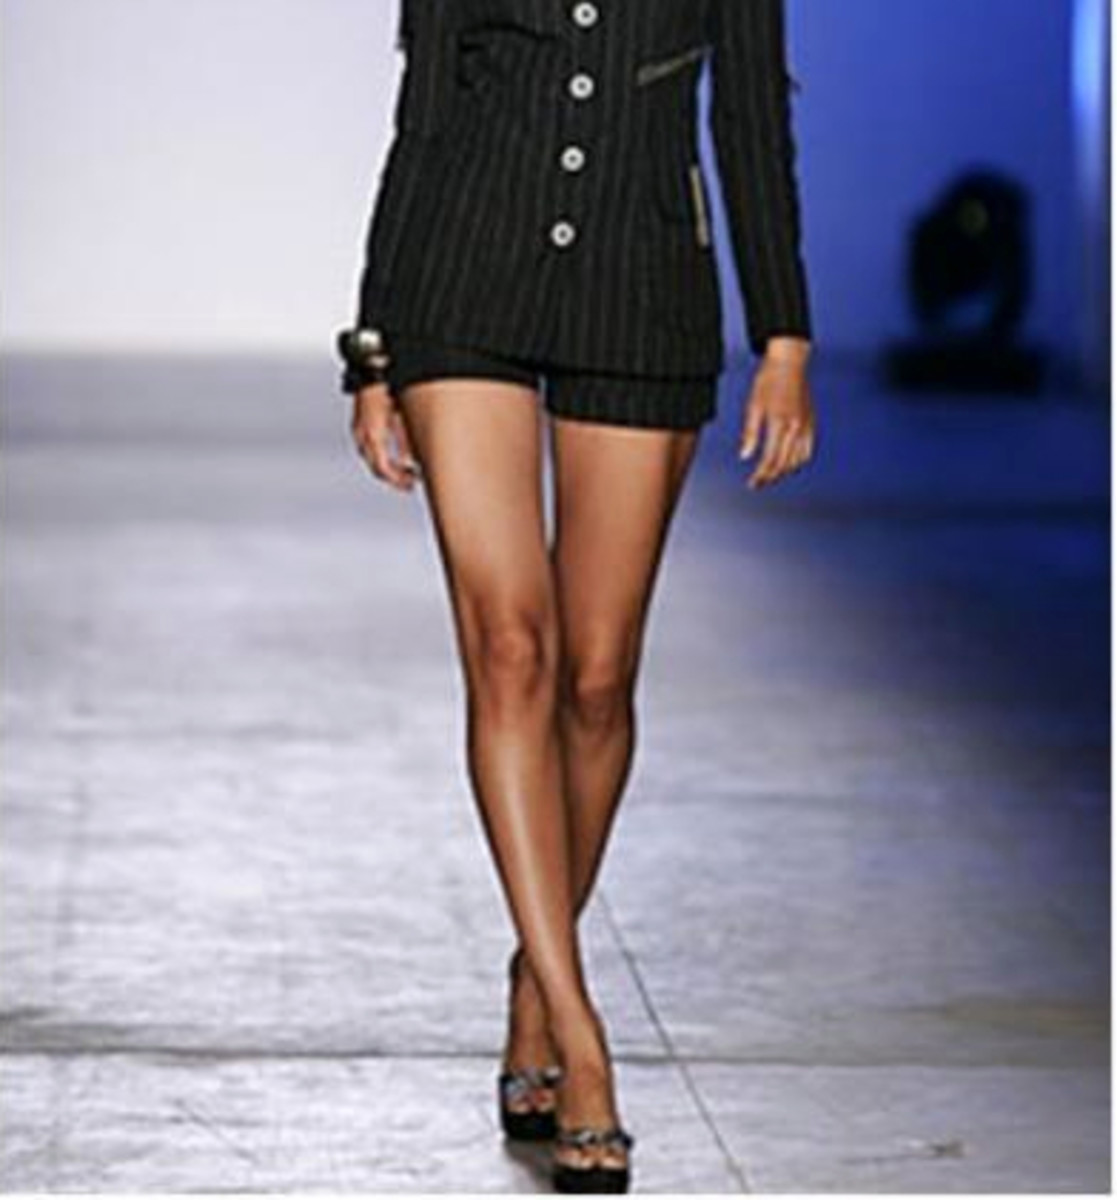 The angle walk is used by many models on the runway.  It is done by criss-crossing along an imaginary line on the runway which is also referred to as the catwalk.